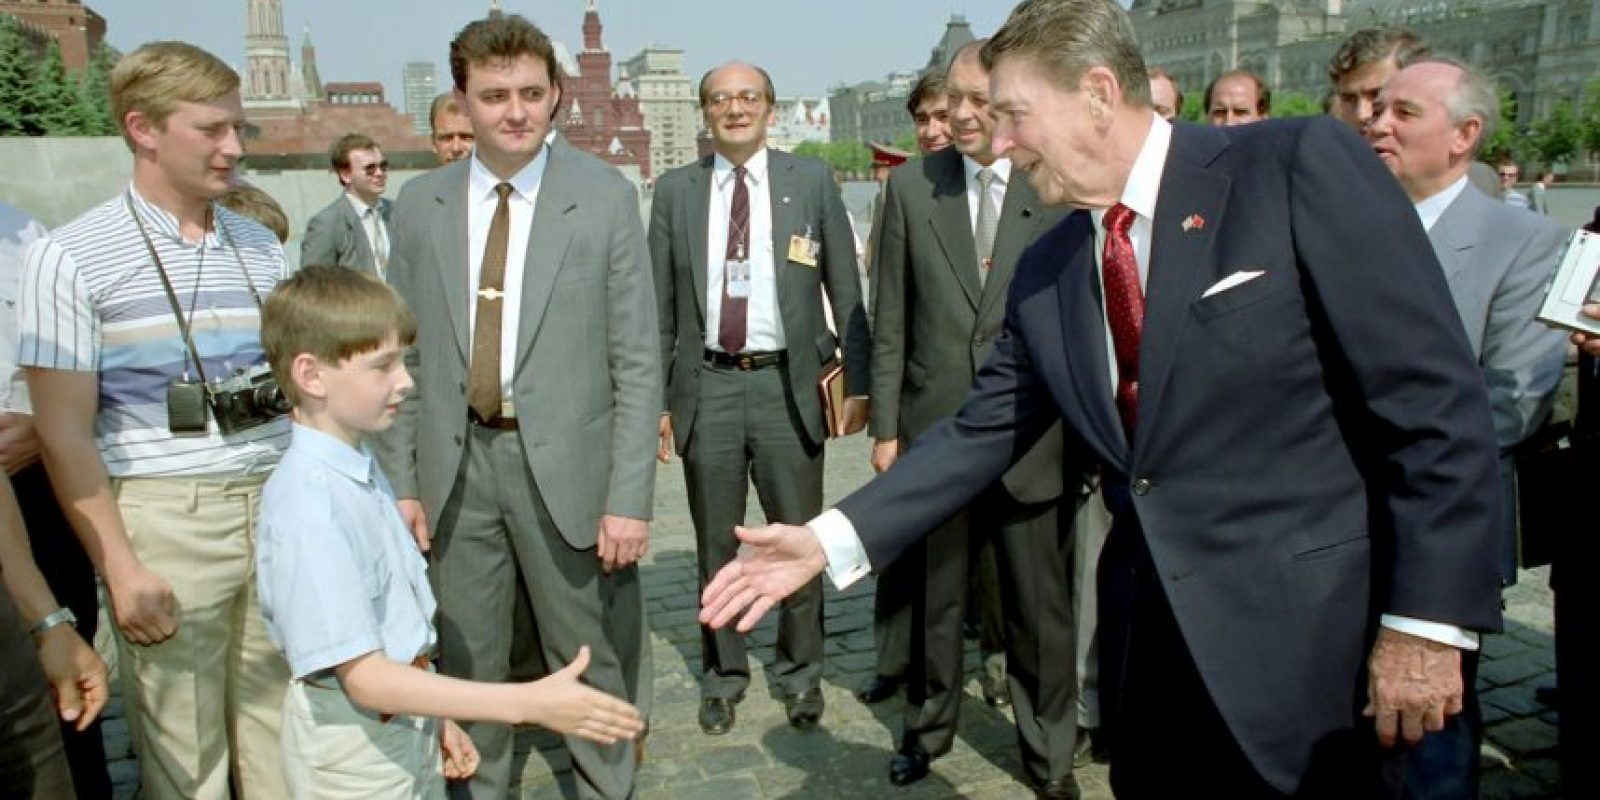 Ronald Reagan se desempeñó como actor antes de ser presidente. Foto: Getty Images